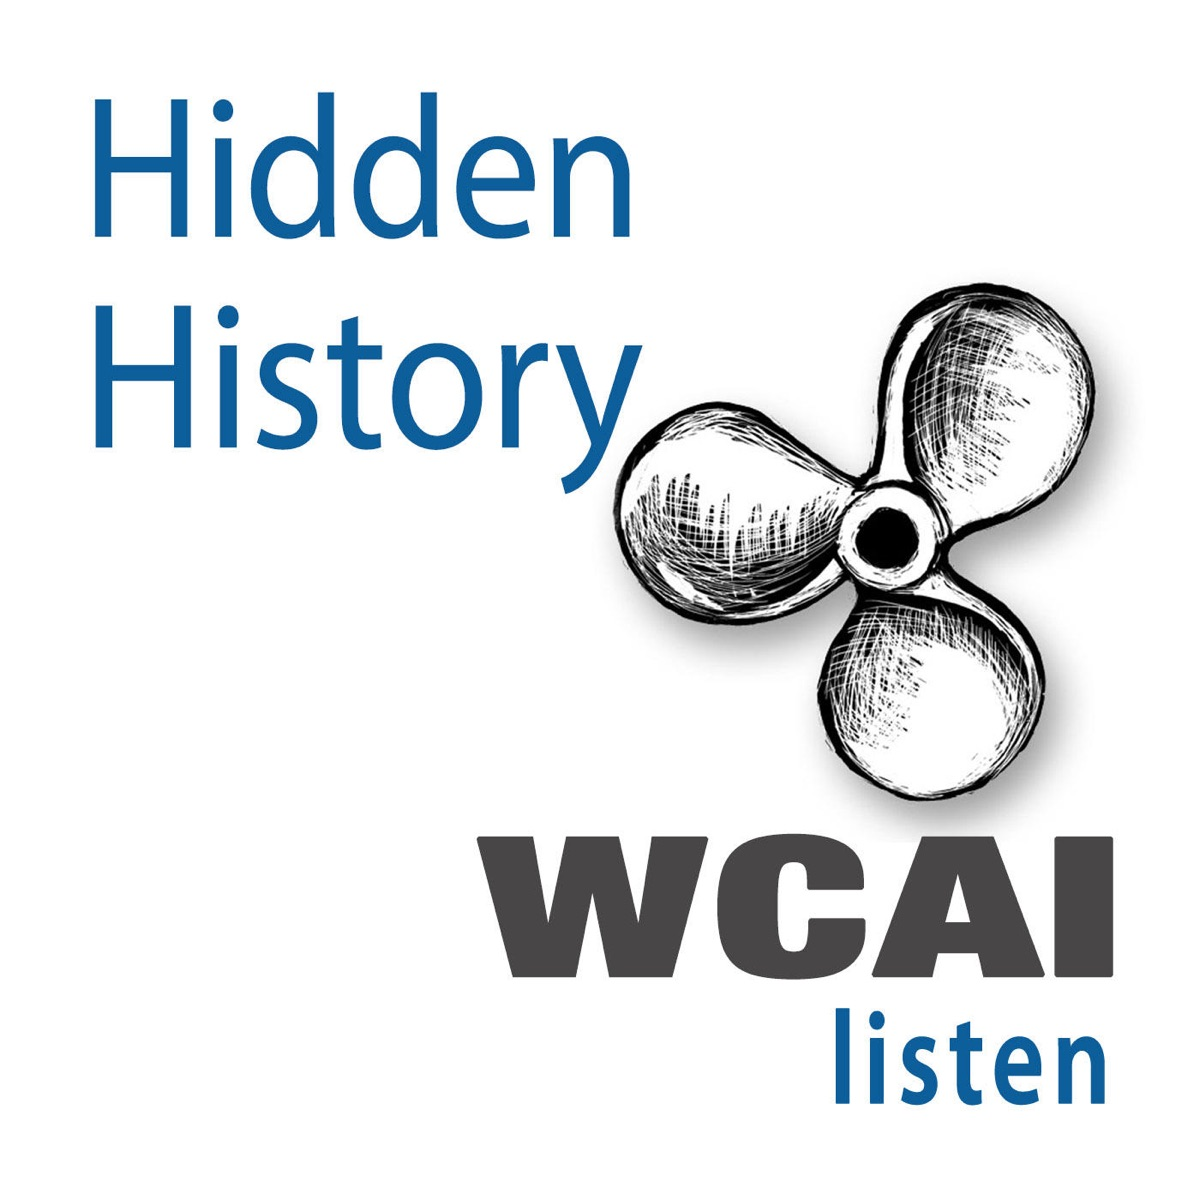 From A Sea Captain's House To A Public Radio Station - The Story Of WCAI's Home Base